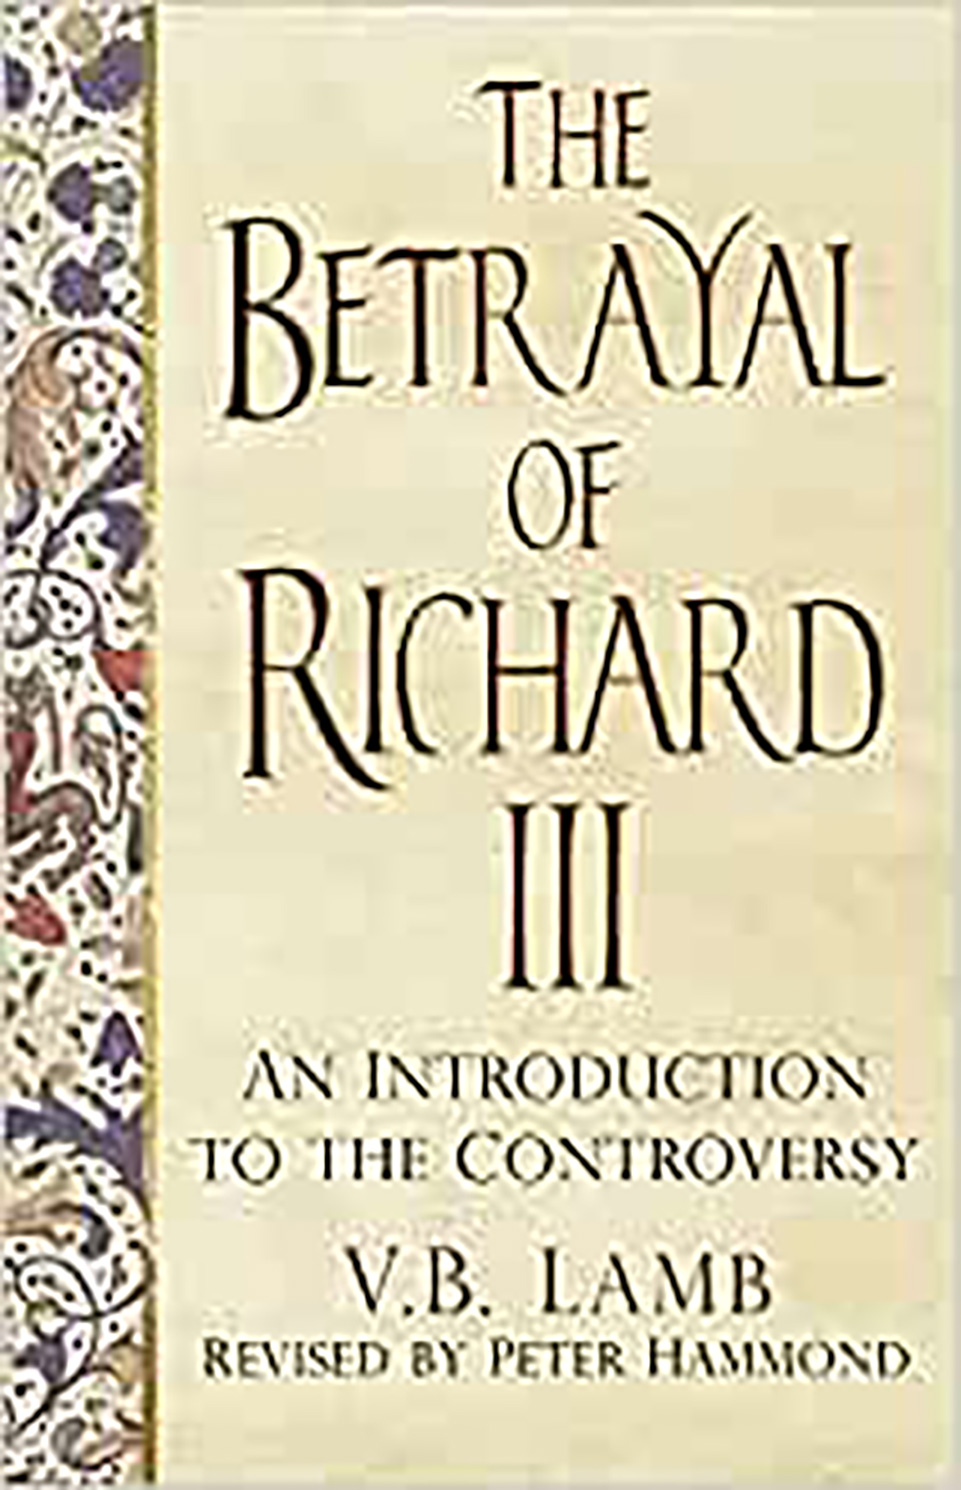 Front cover of a book: The Betrayal of Richard III by V.B. Lamb